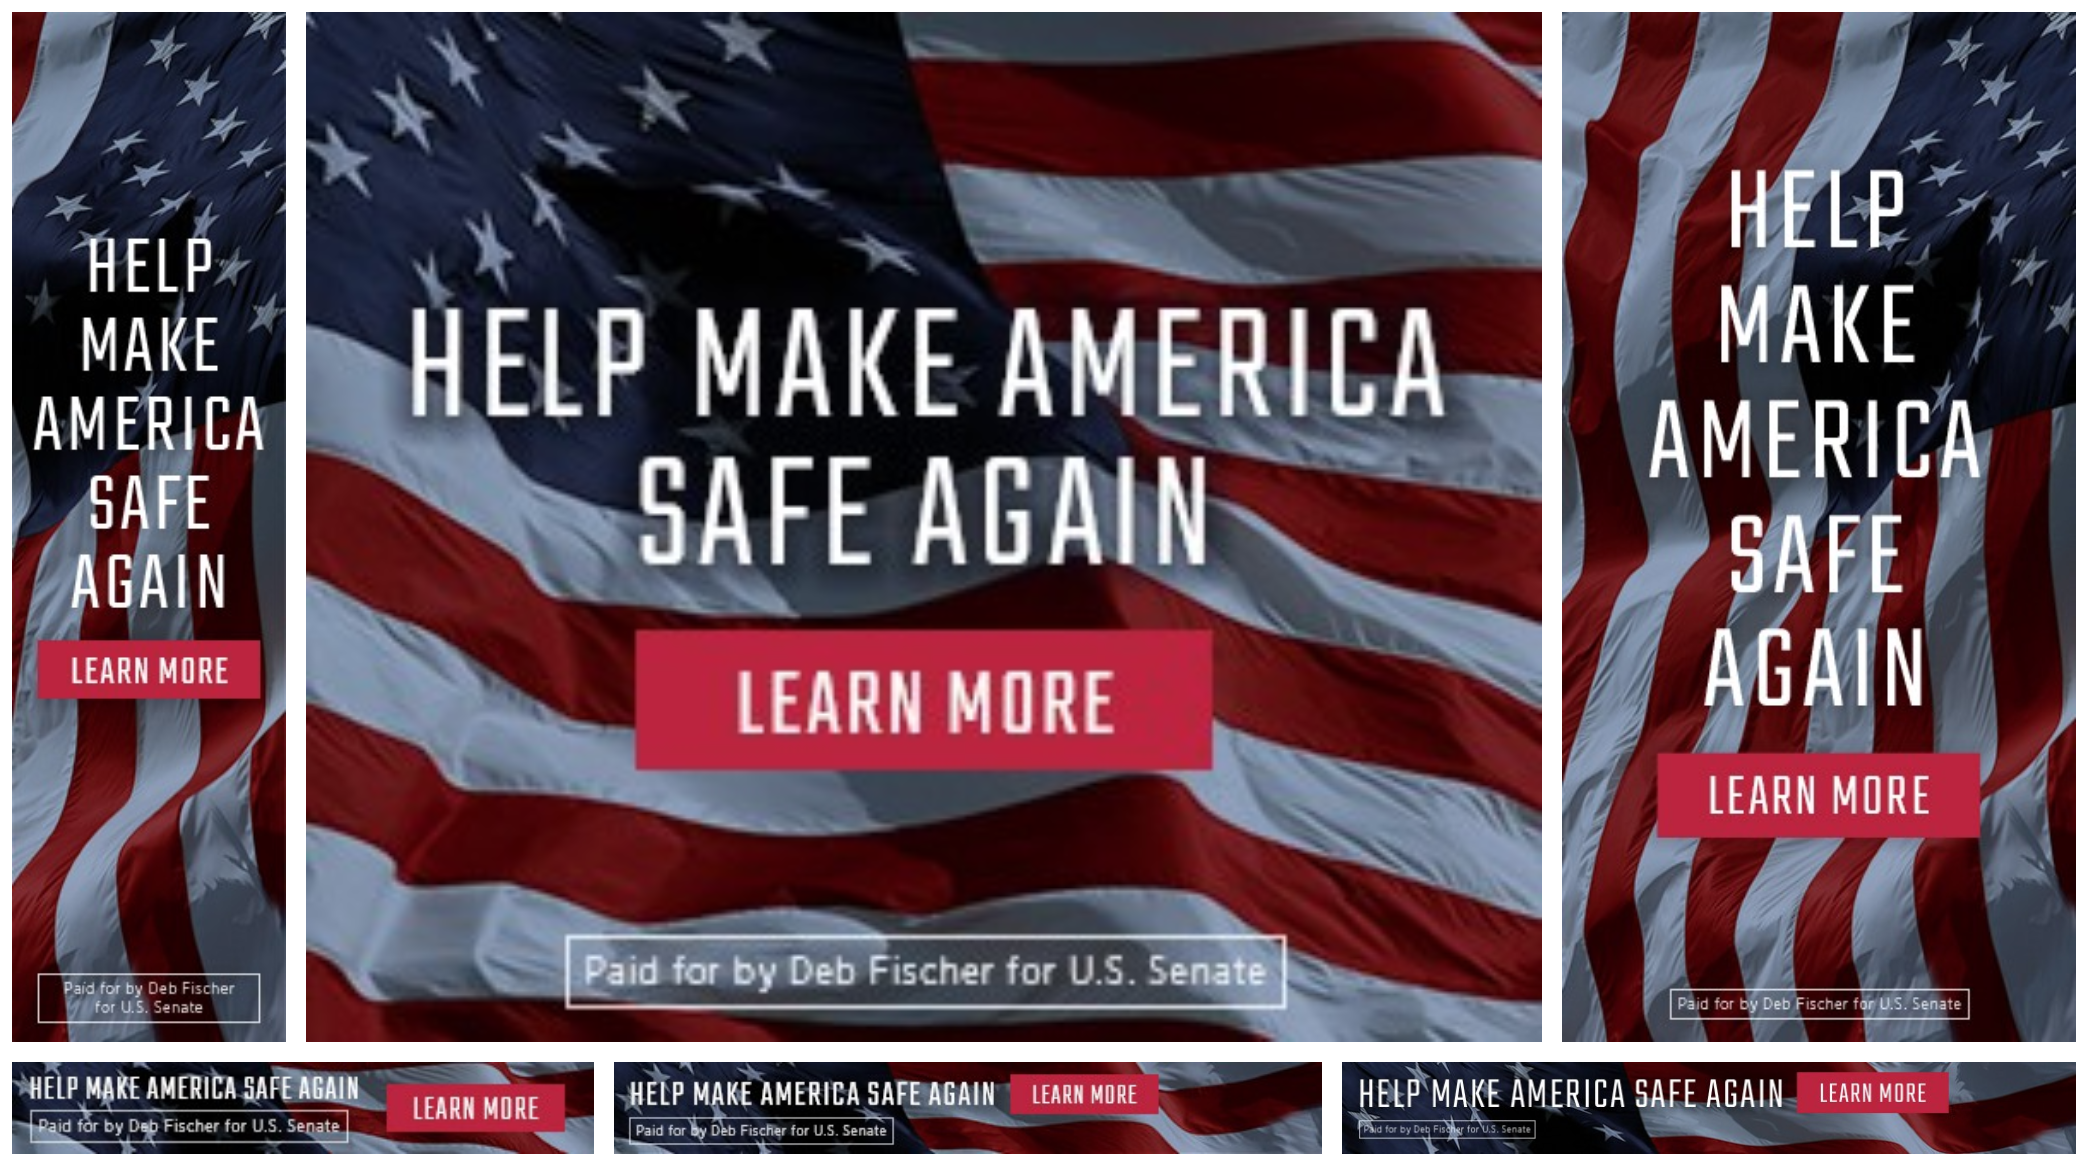 Ads: Making America Safe